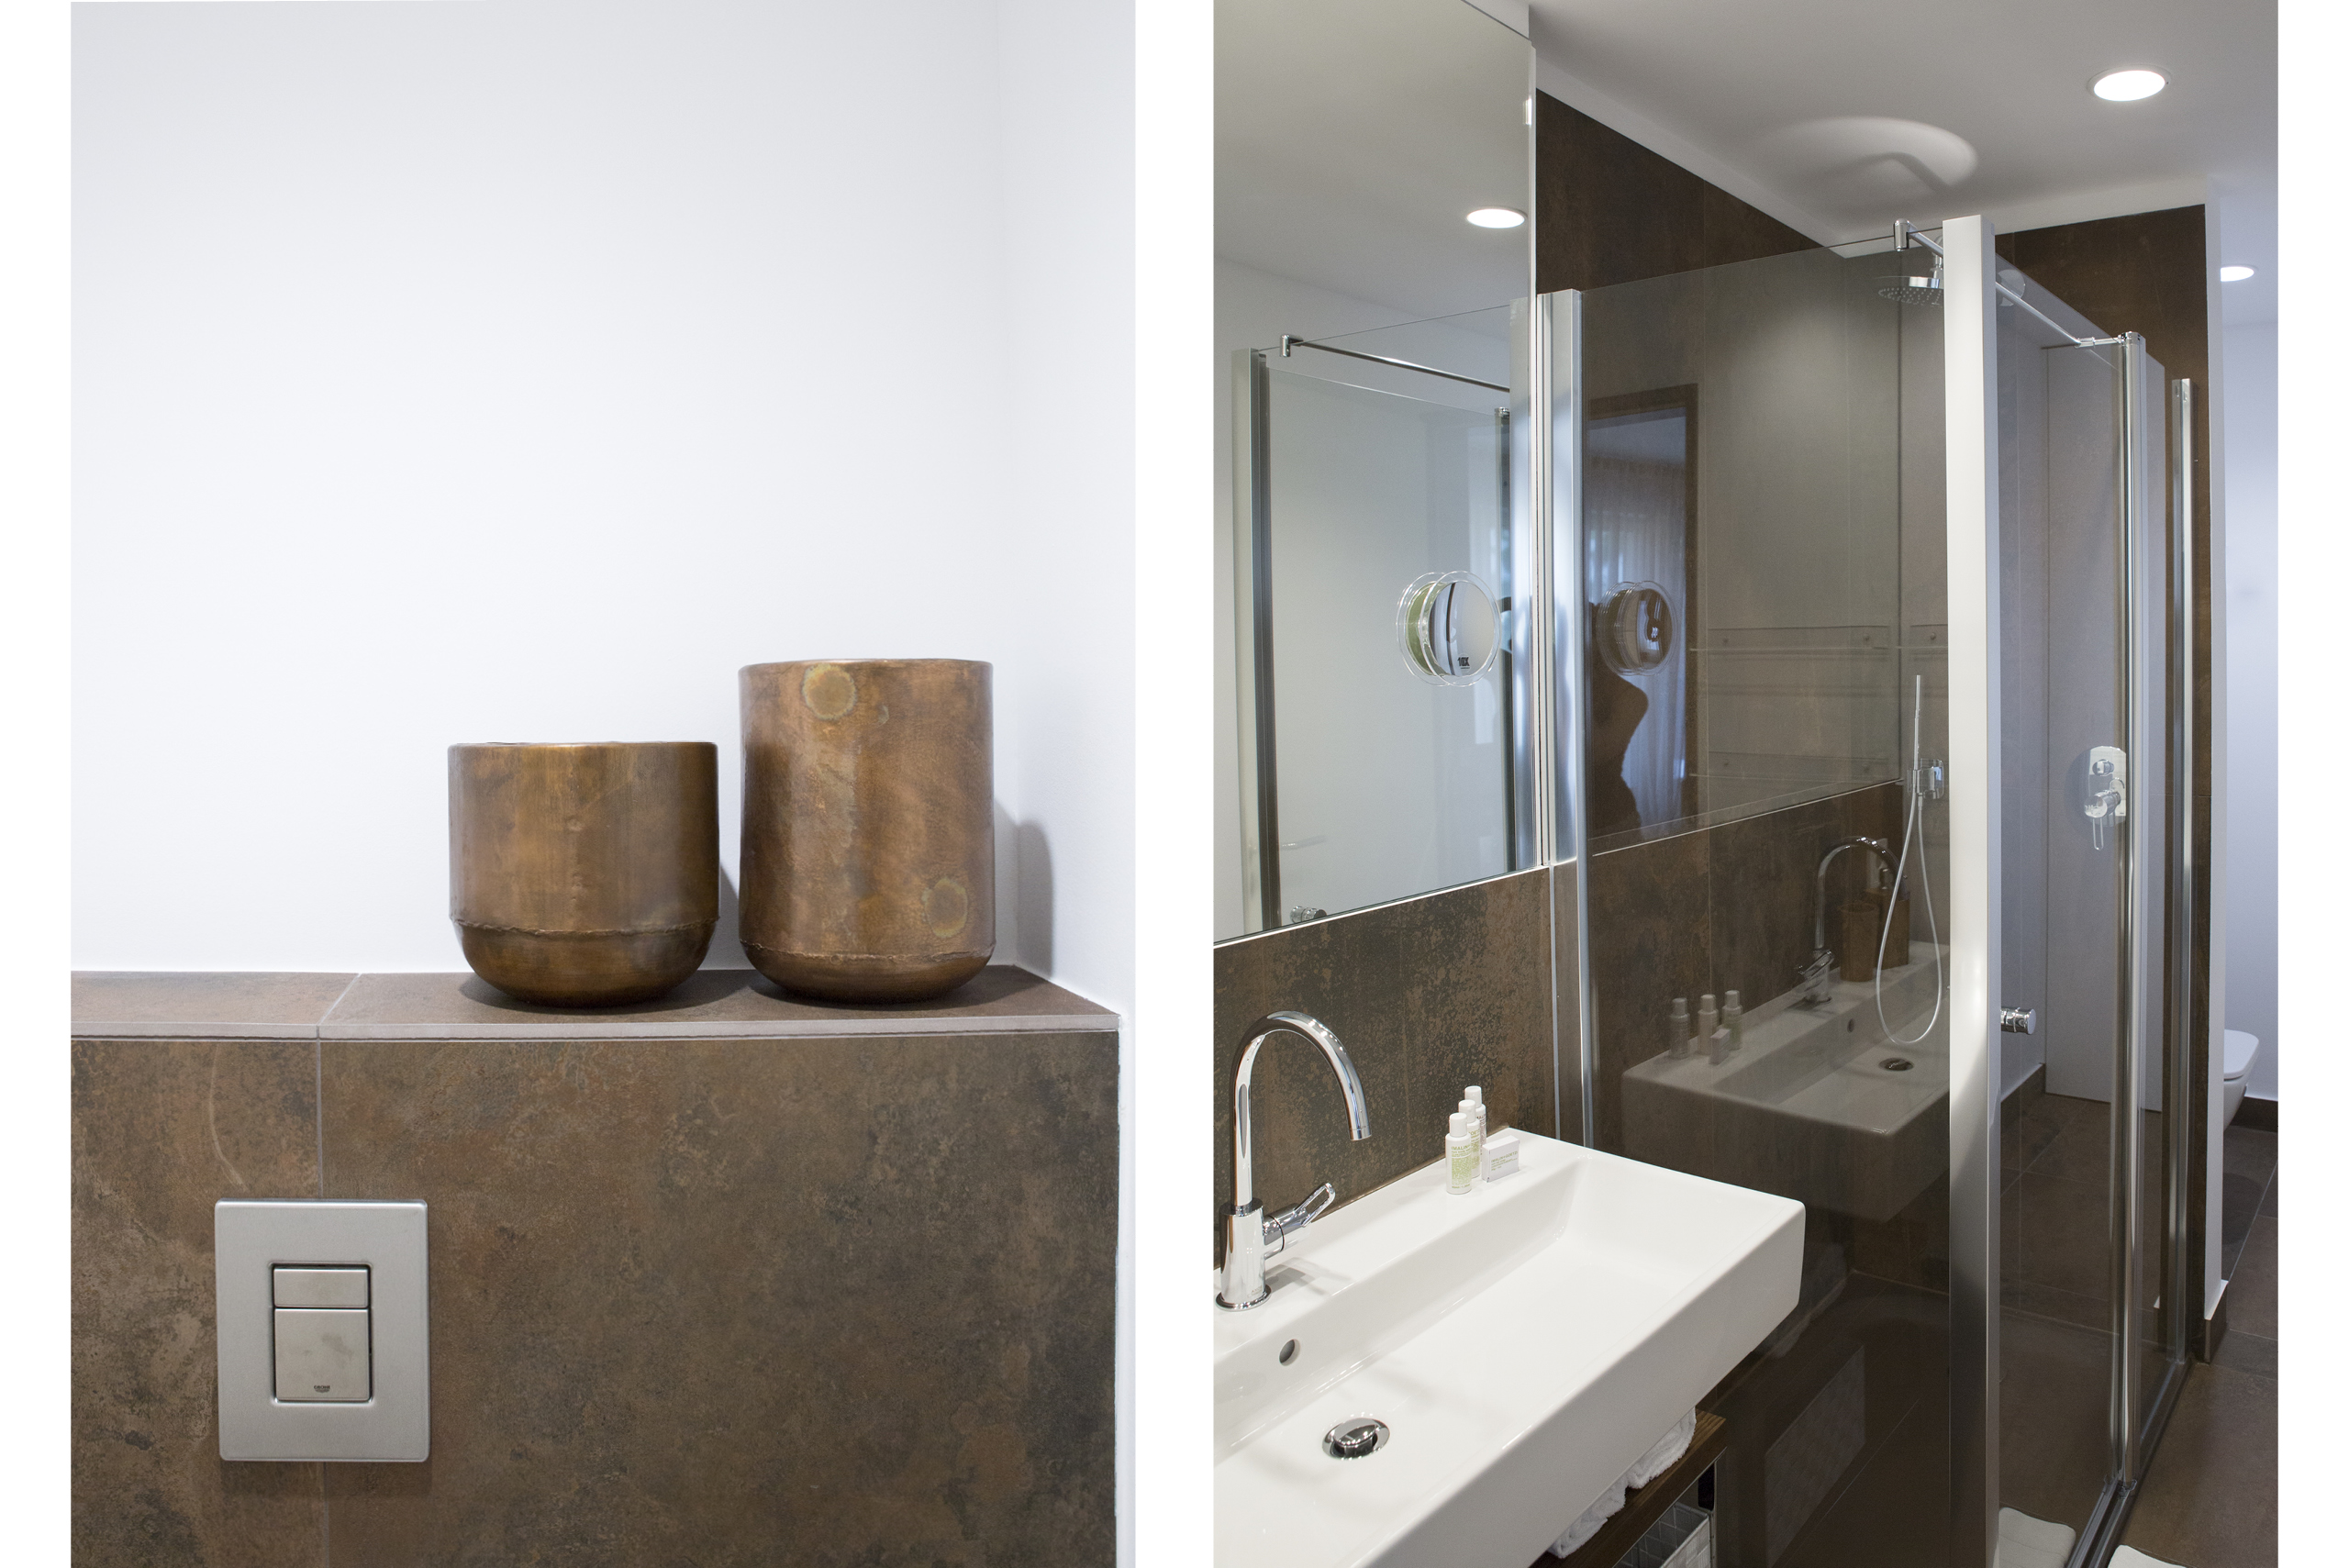 Badezimmer Interims-Wohnung  by andy - for better moods